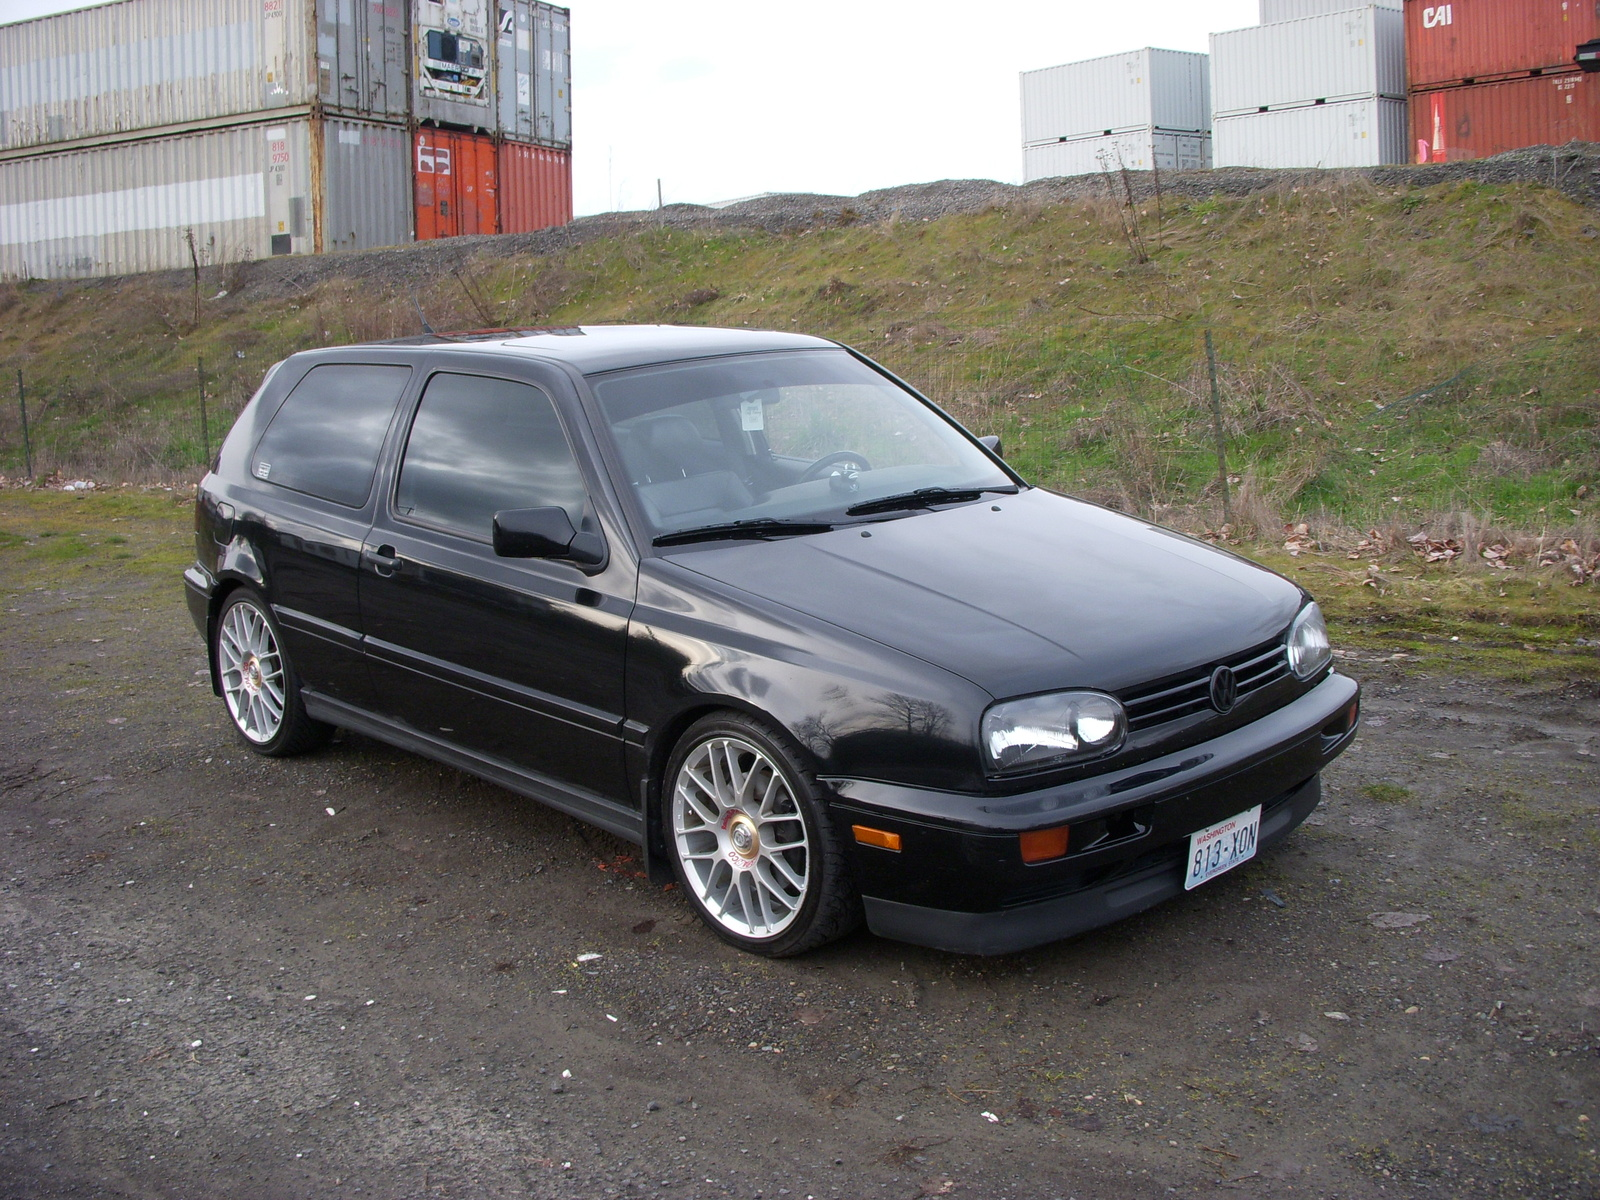 1999 vw jetta vr6 with 1998 Volkswagen Gti Pictures C5908 Pi15343381 on 2000 Jetta Abs Pump Wiring Diagram likewise RepairGuideContent together with Vw Chassis Guide together with Volkswagen Golf Mk3 as well 1998 Volkswagen Gti Pictures C5908 pi15343381.